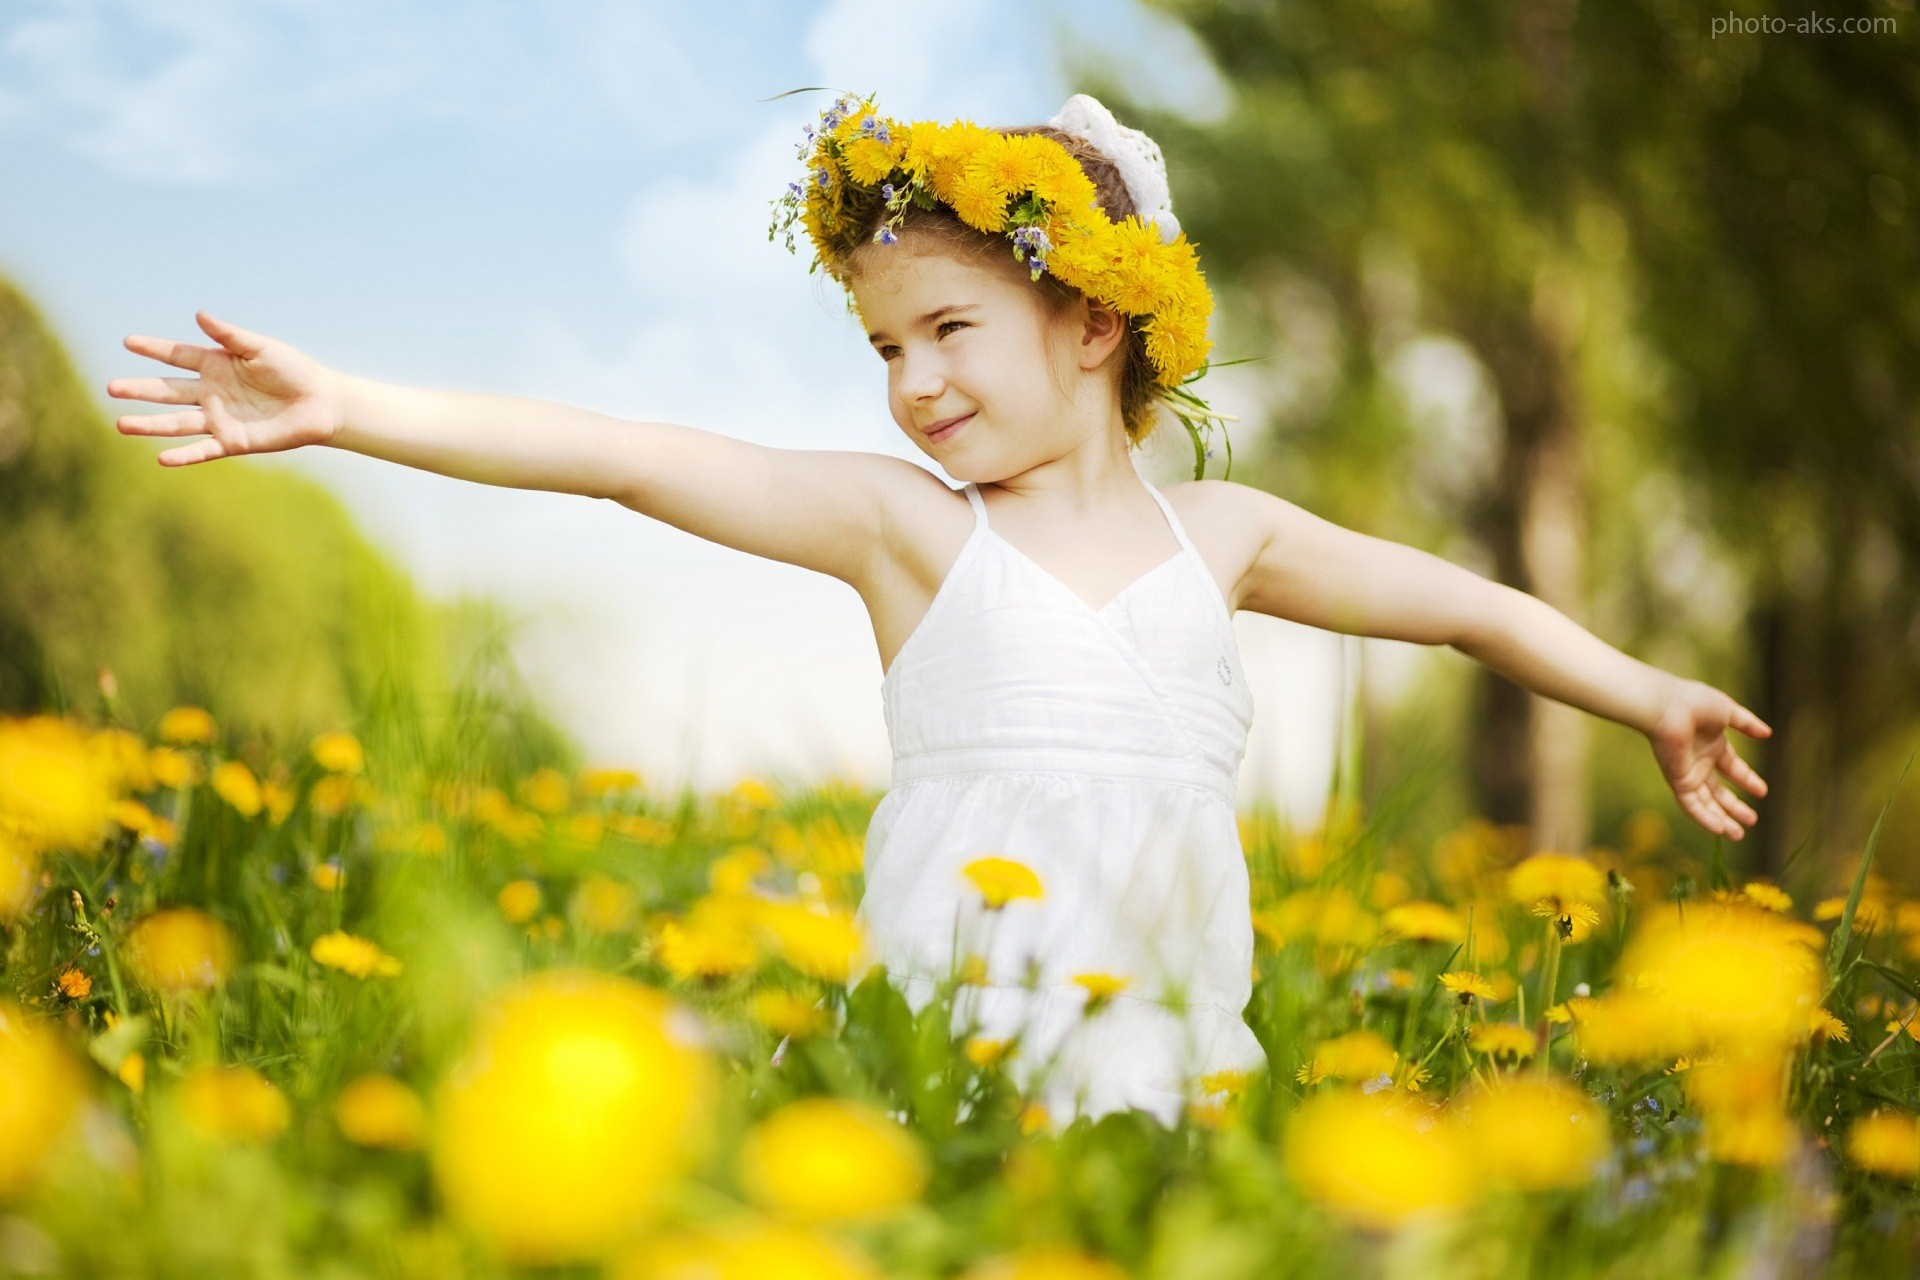 http://pic.photo-aks.com/photo/images/baby/large/best_of_beautiful_baby_wallpaper.jpg